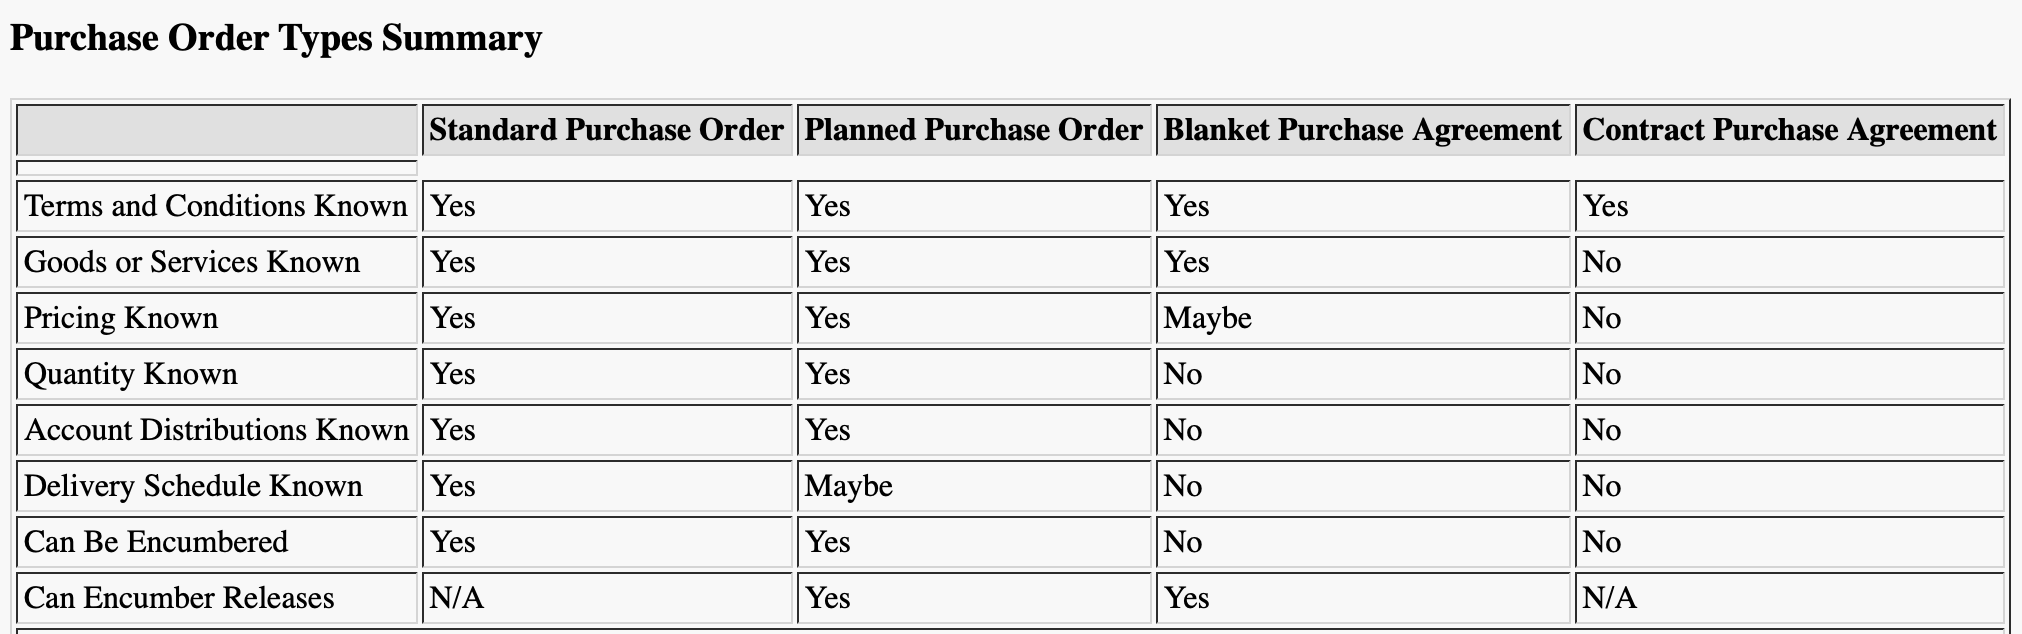 purchase order types